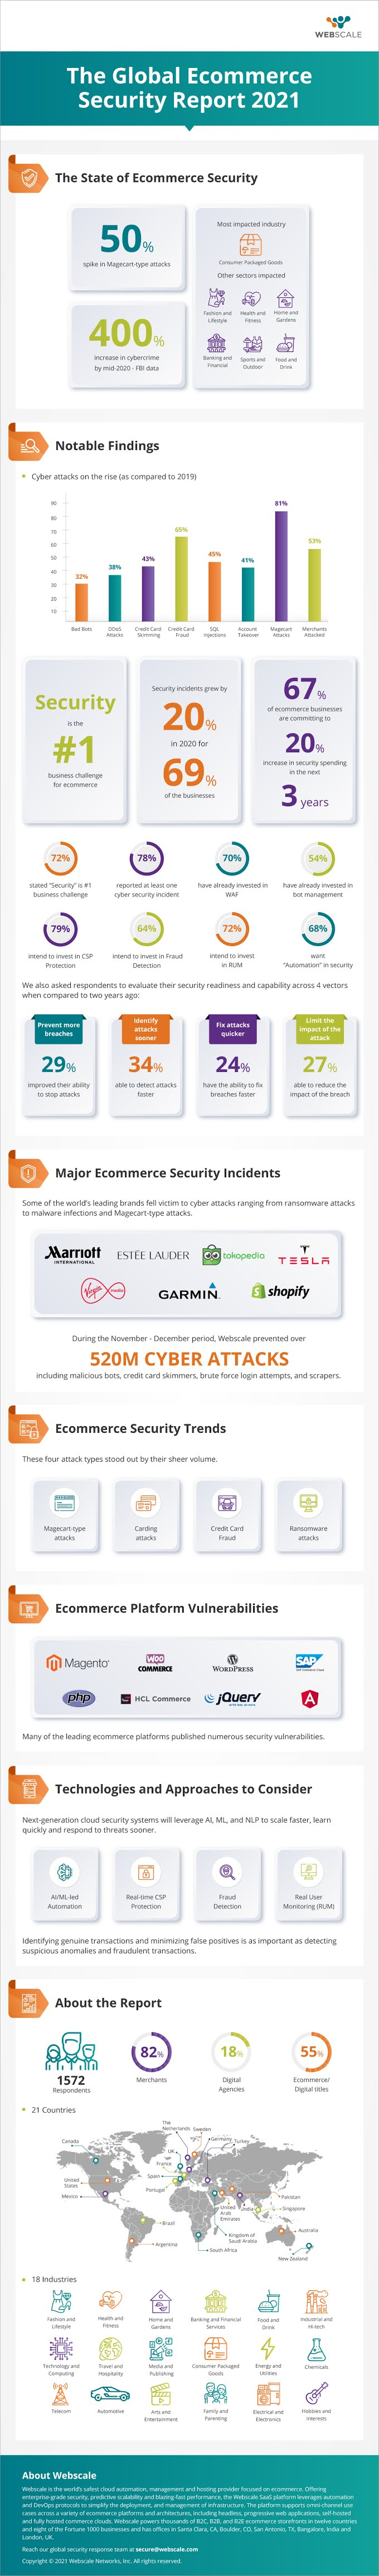 The 2021 Global Ecommerce Security Report #infographic #eCommerce, Security Report #infographics #Global Ecommerce